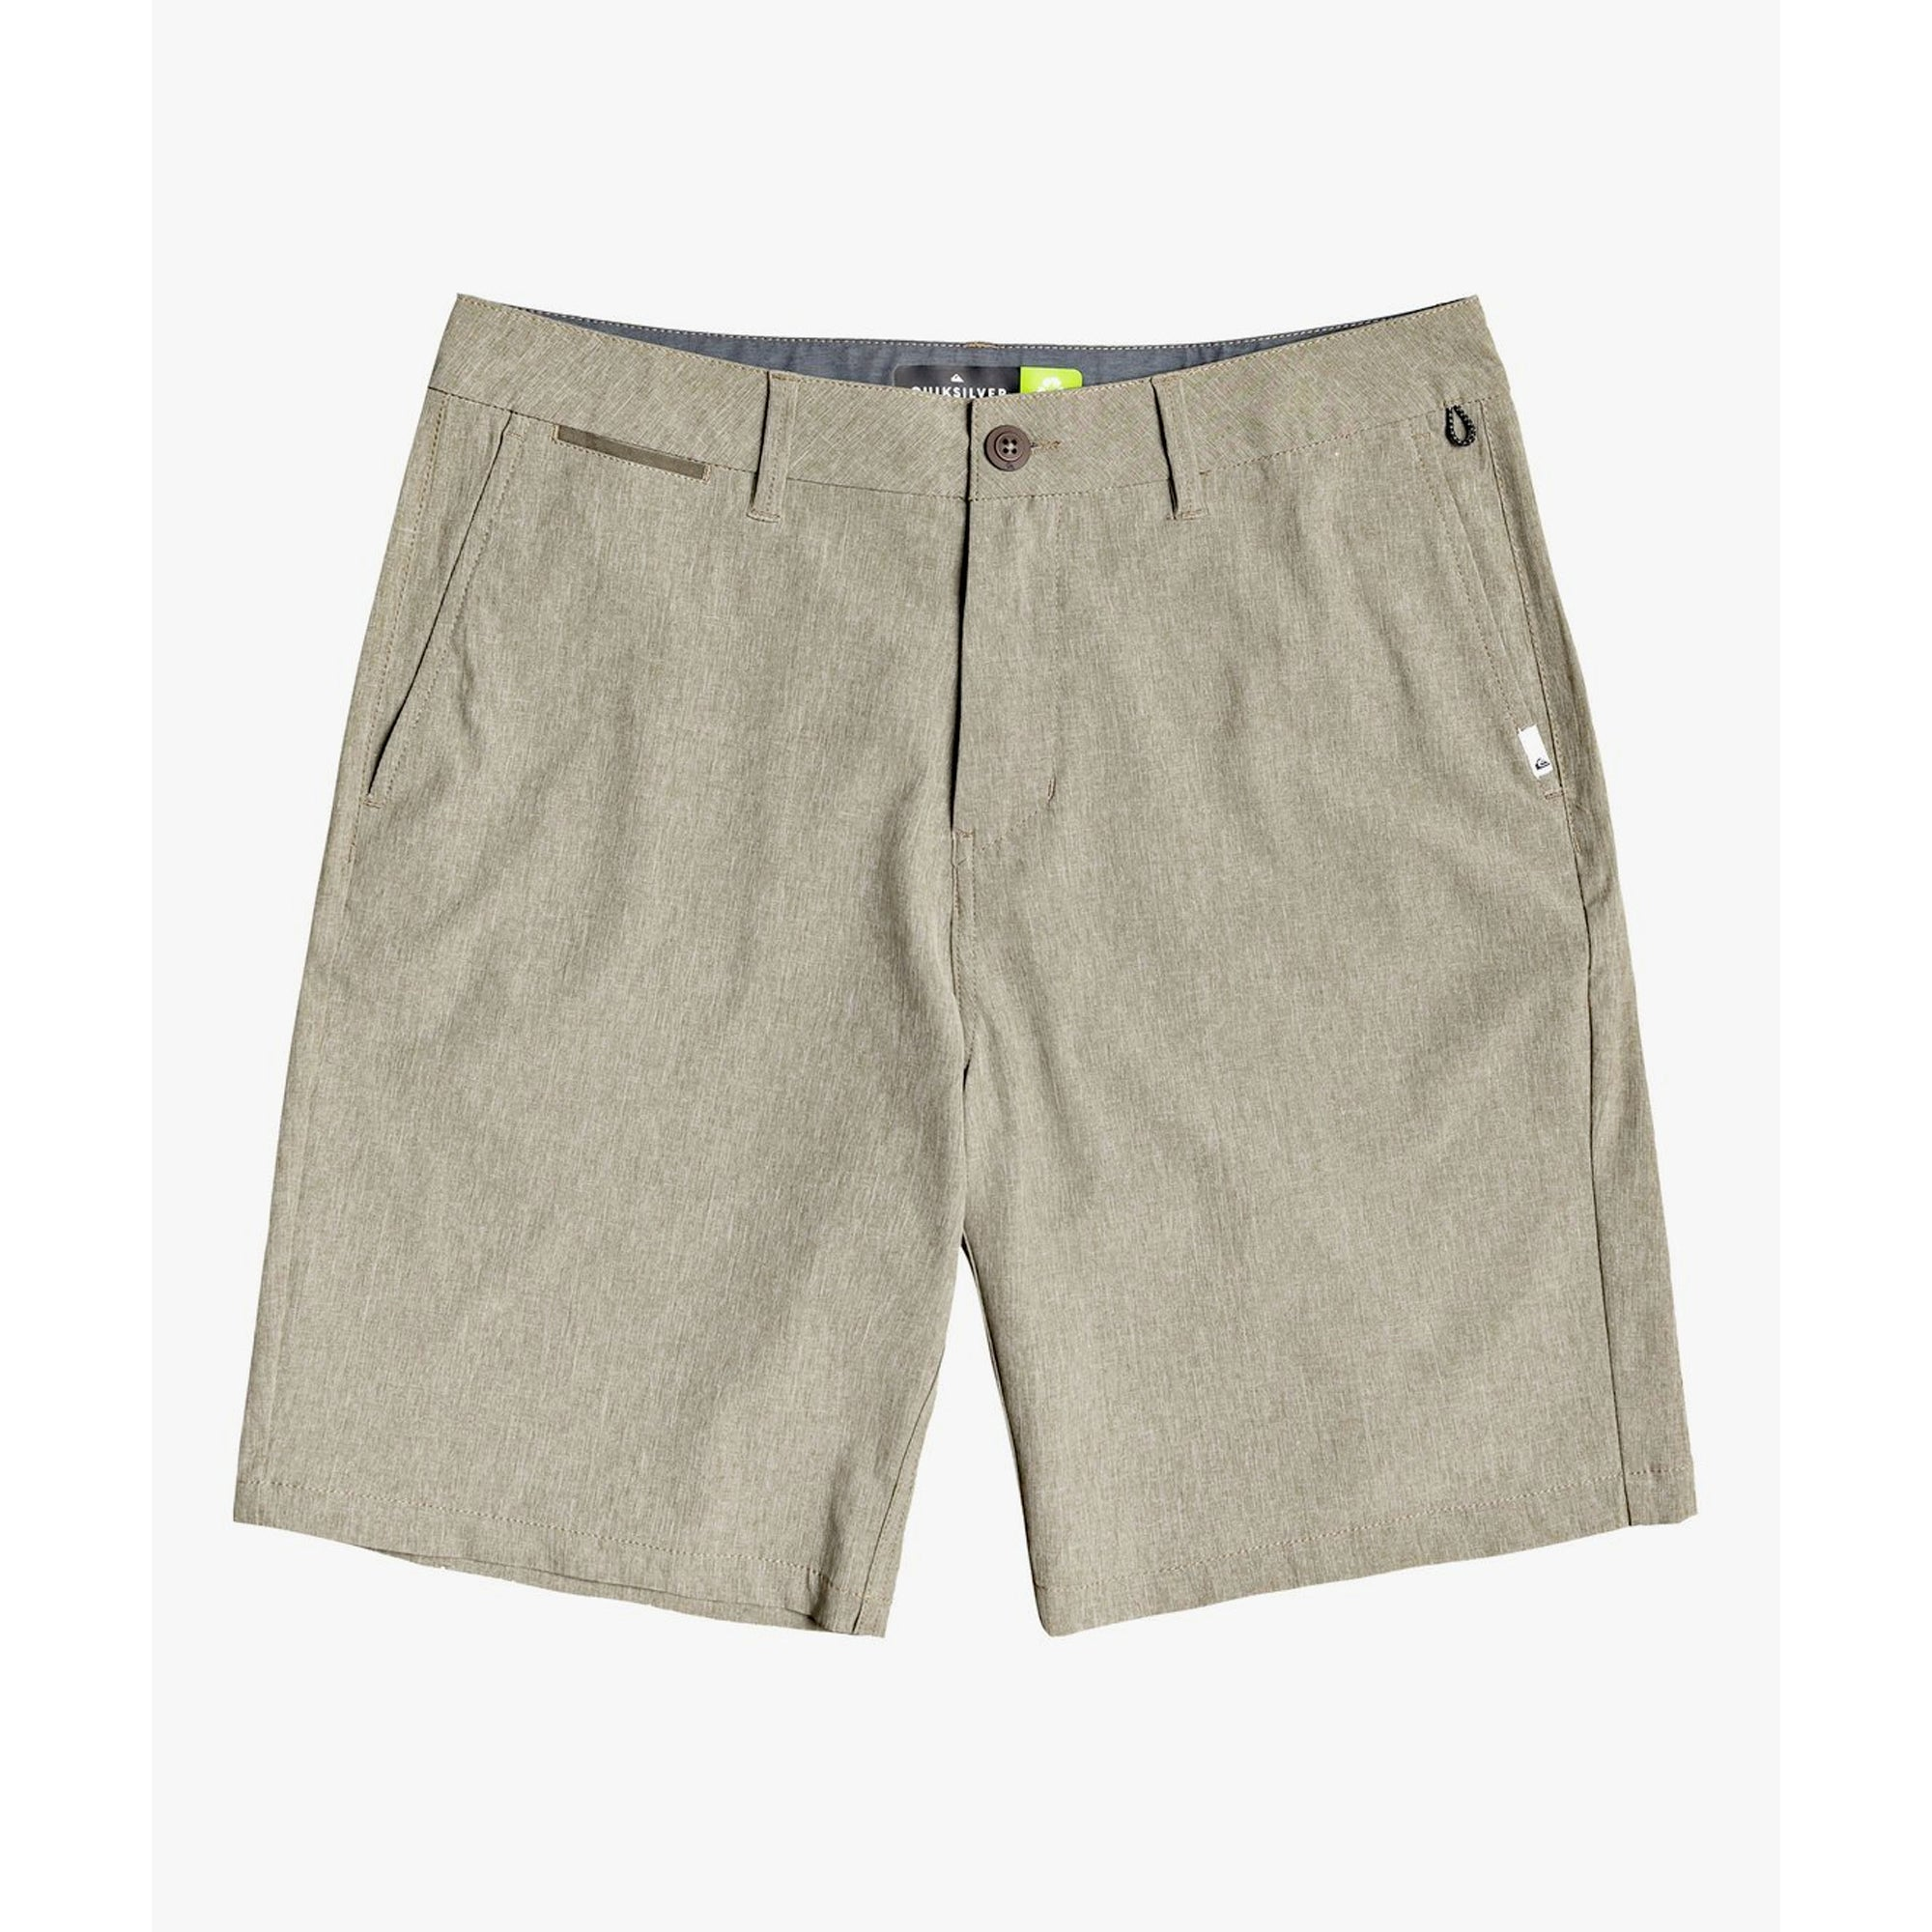 "Quiksilver Union Heather 20"" Amphibian Men's Walkshorts"